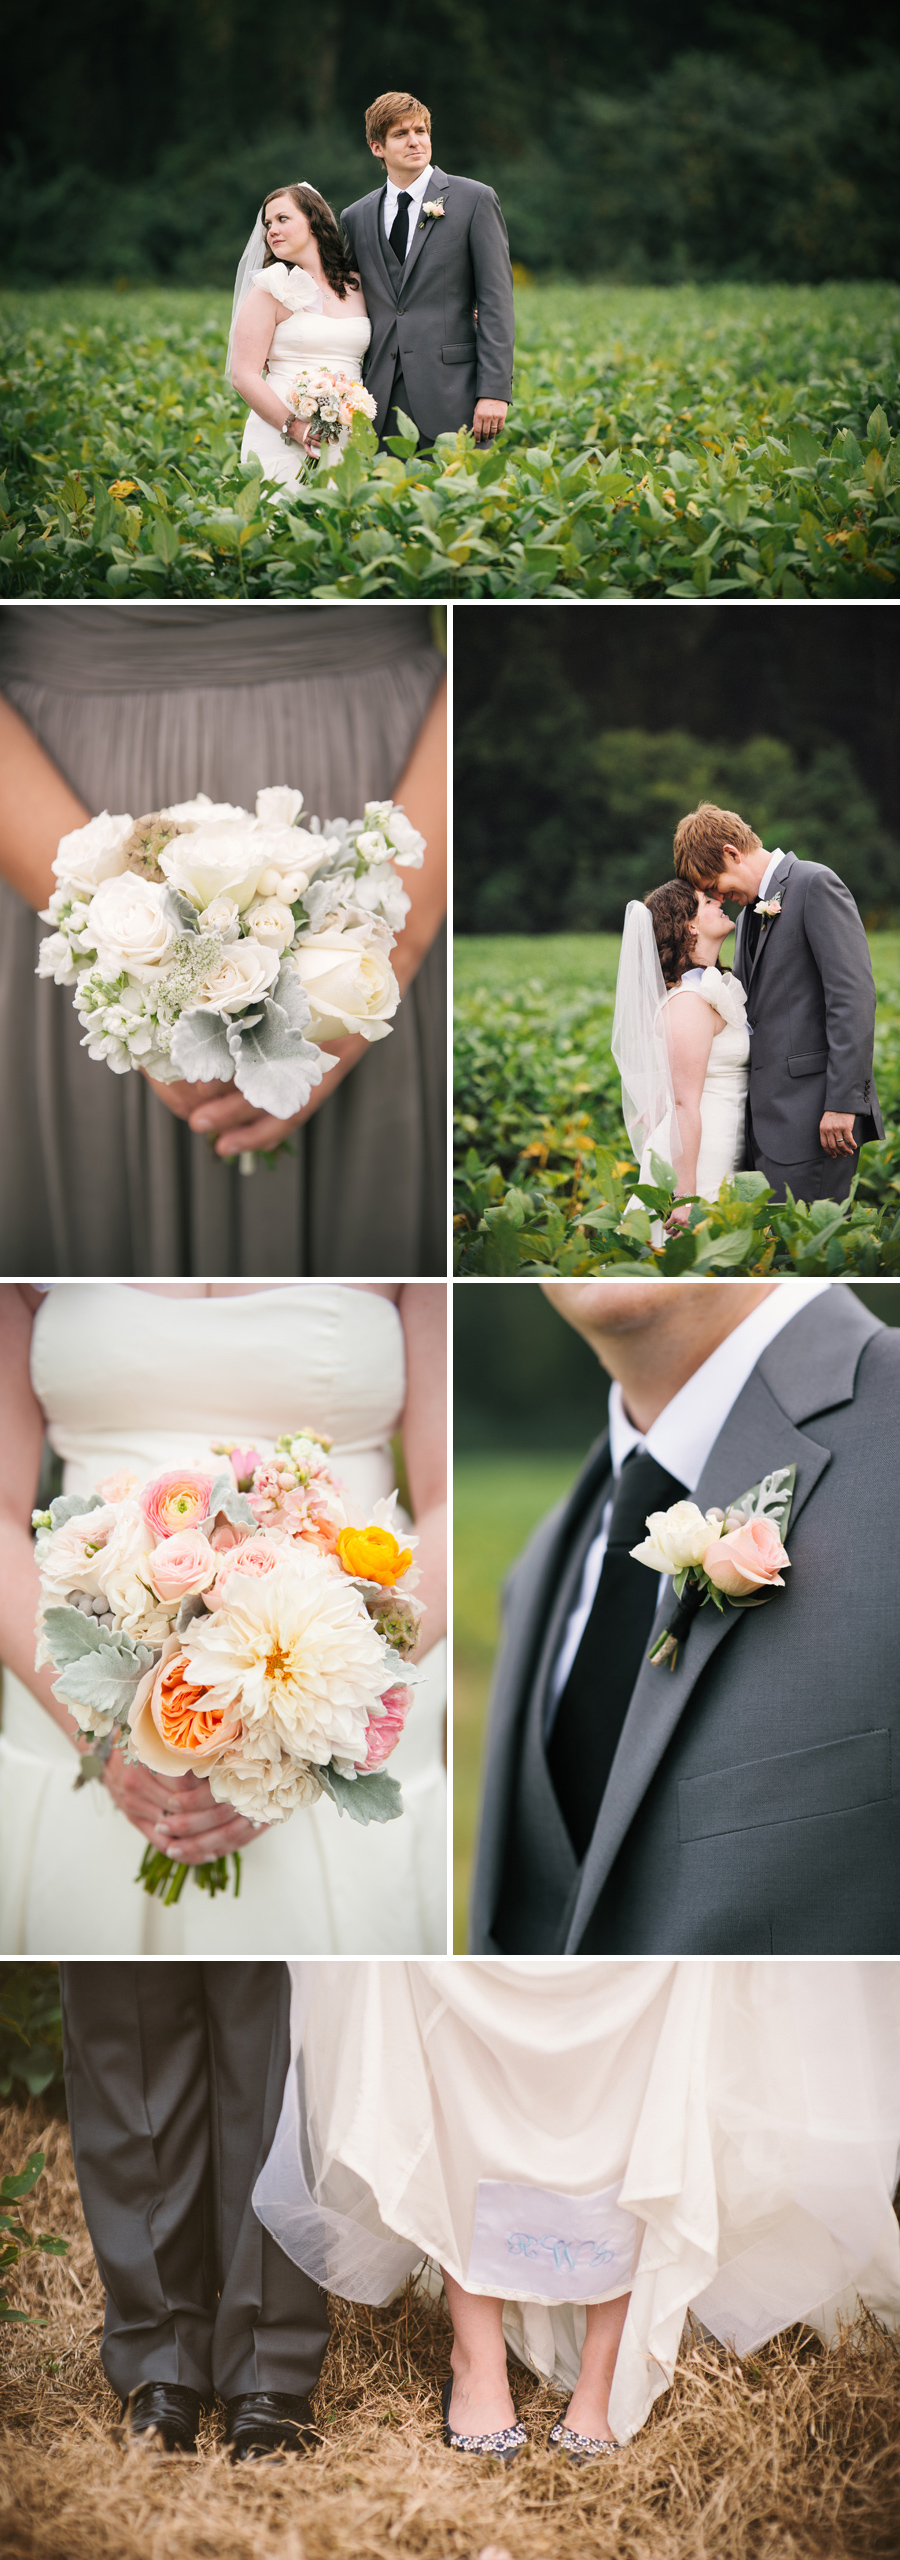 Romantic rustic wedding in Boykin, SC